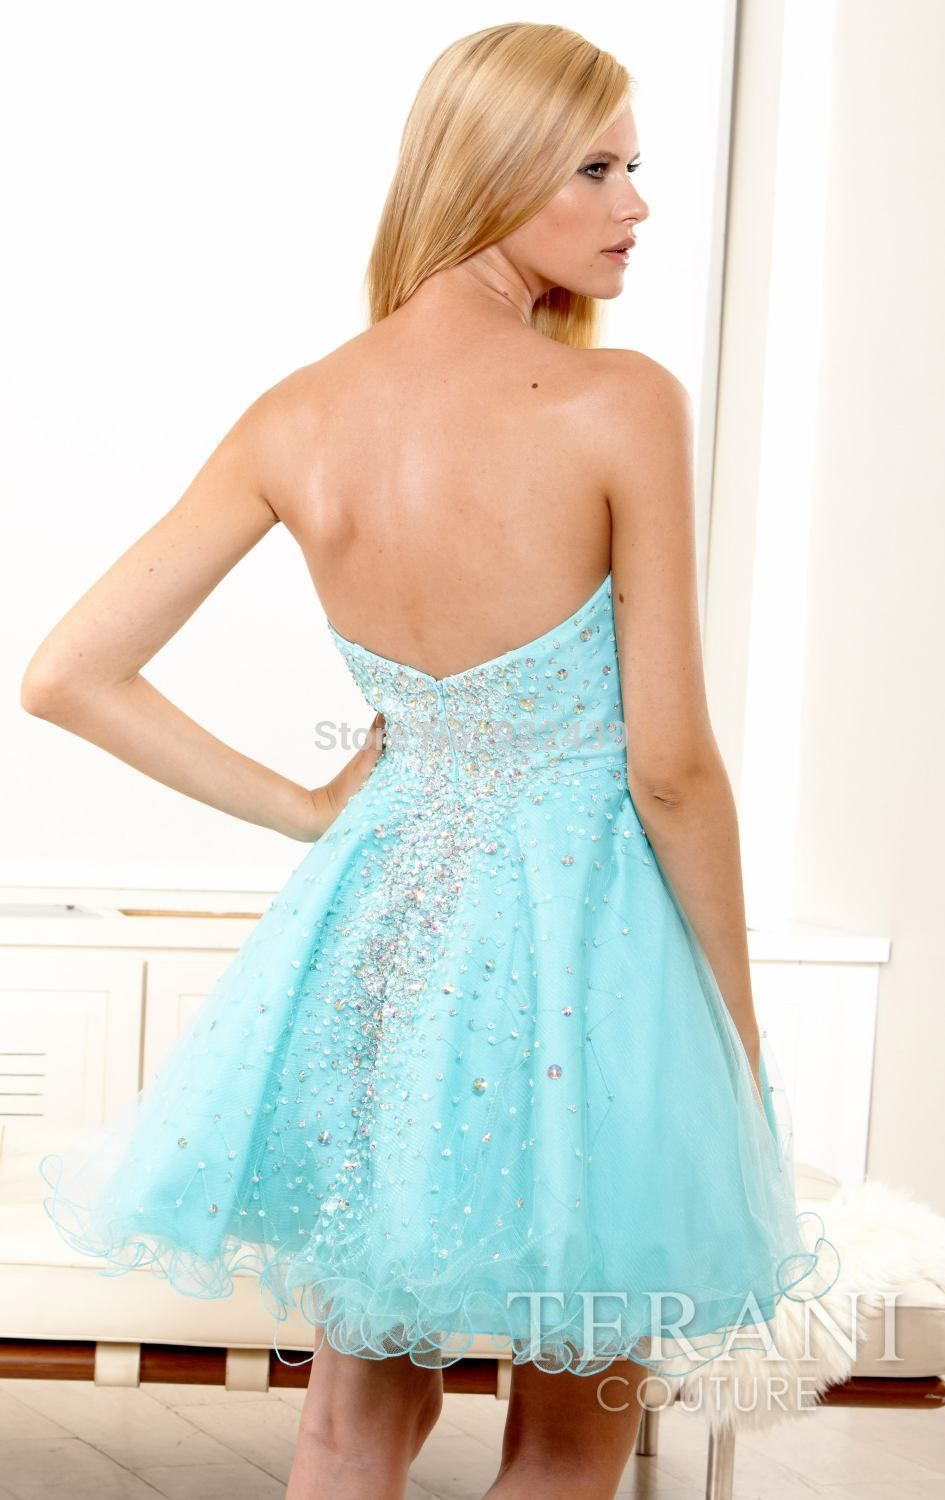 Guest at a wedding dress  Cocktail dresses for wedding guest australia  Beautiful dresses